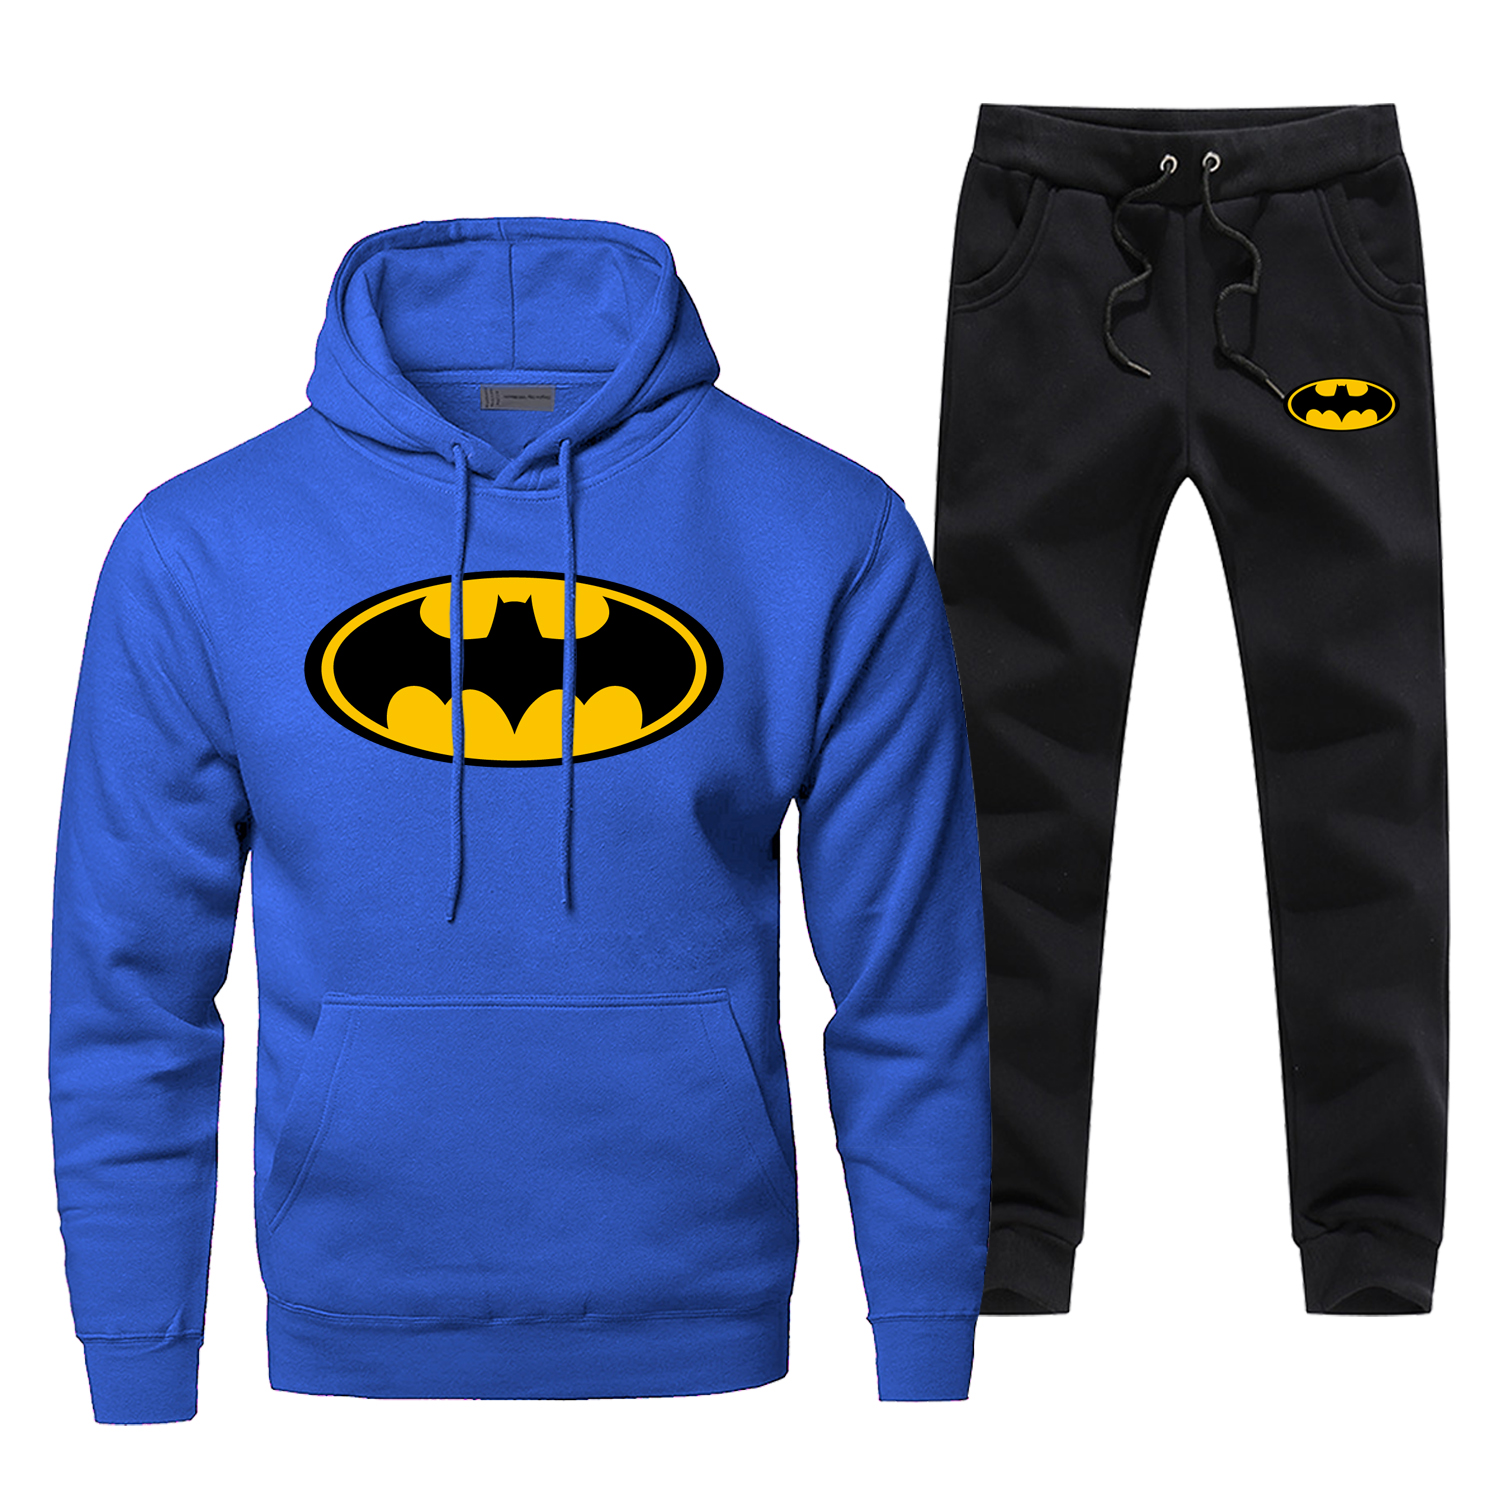 Batman Print Fashion Men's Full Suit Tracksuit Superhero Bat Man Sweatpants Hoodies For Men 2 Piece Set Fitness Warm Streetwear